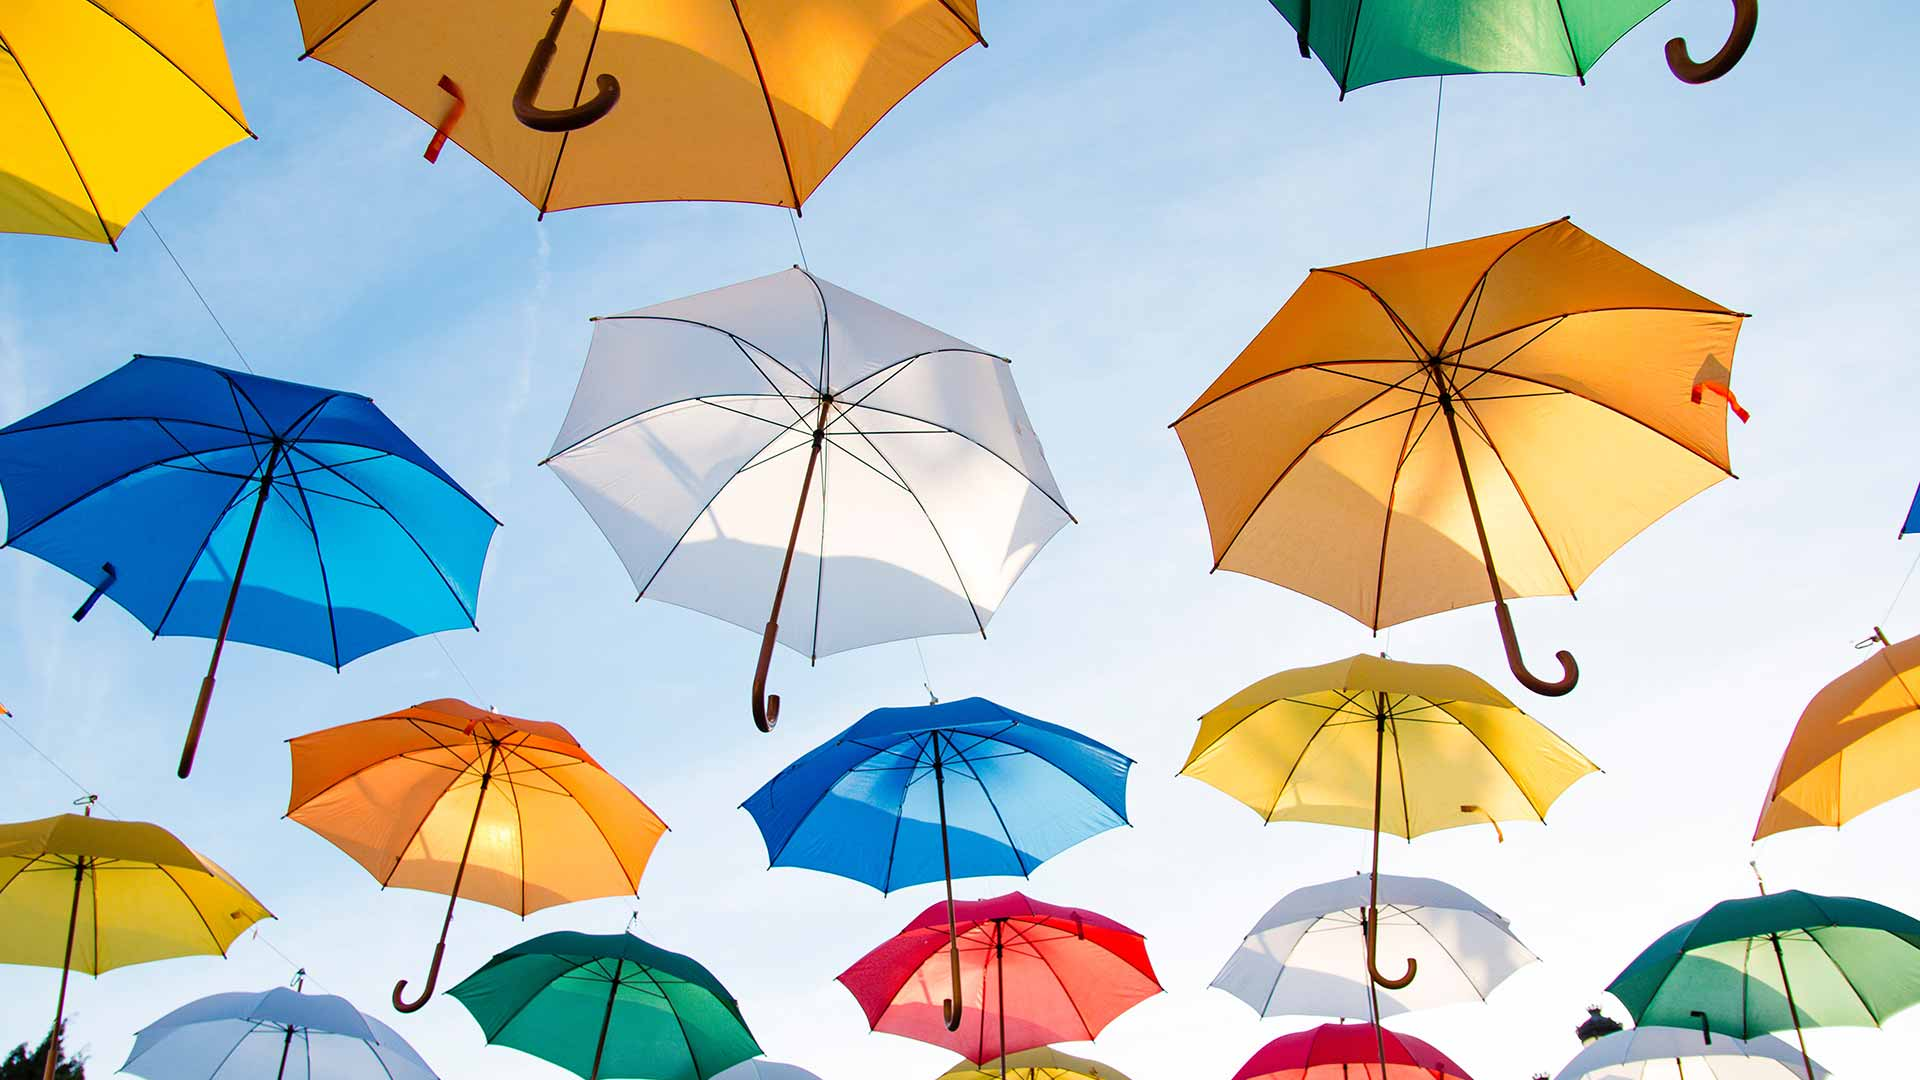 NDIS Provider Insurance: A collection of coloured umbrellas float up into the sky.